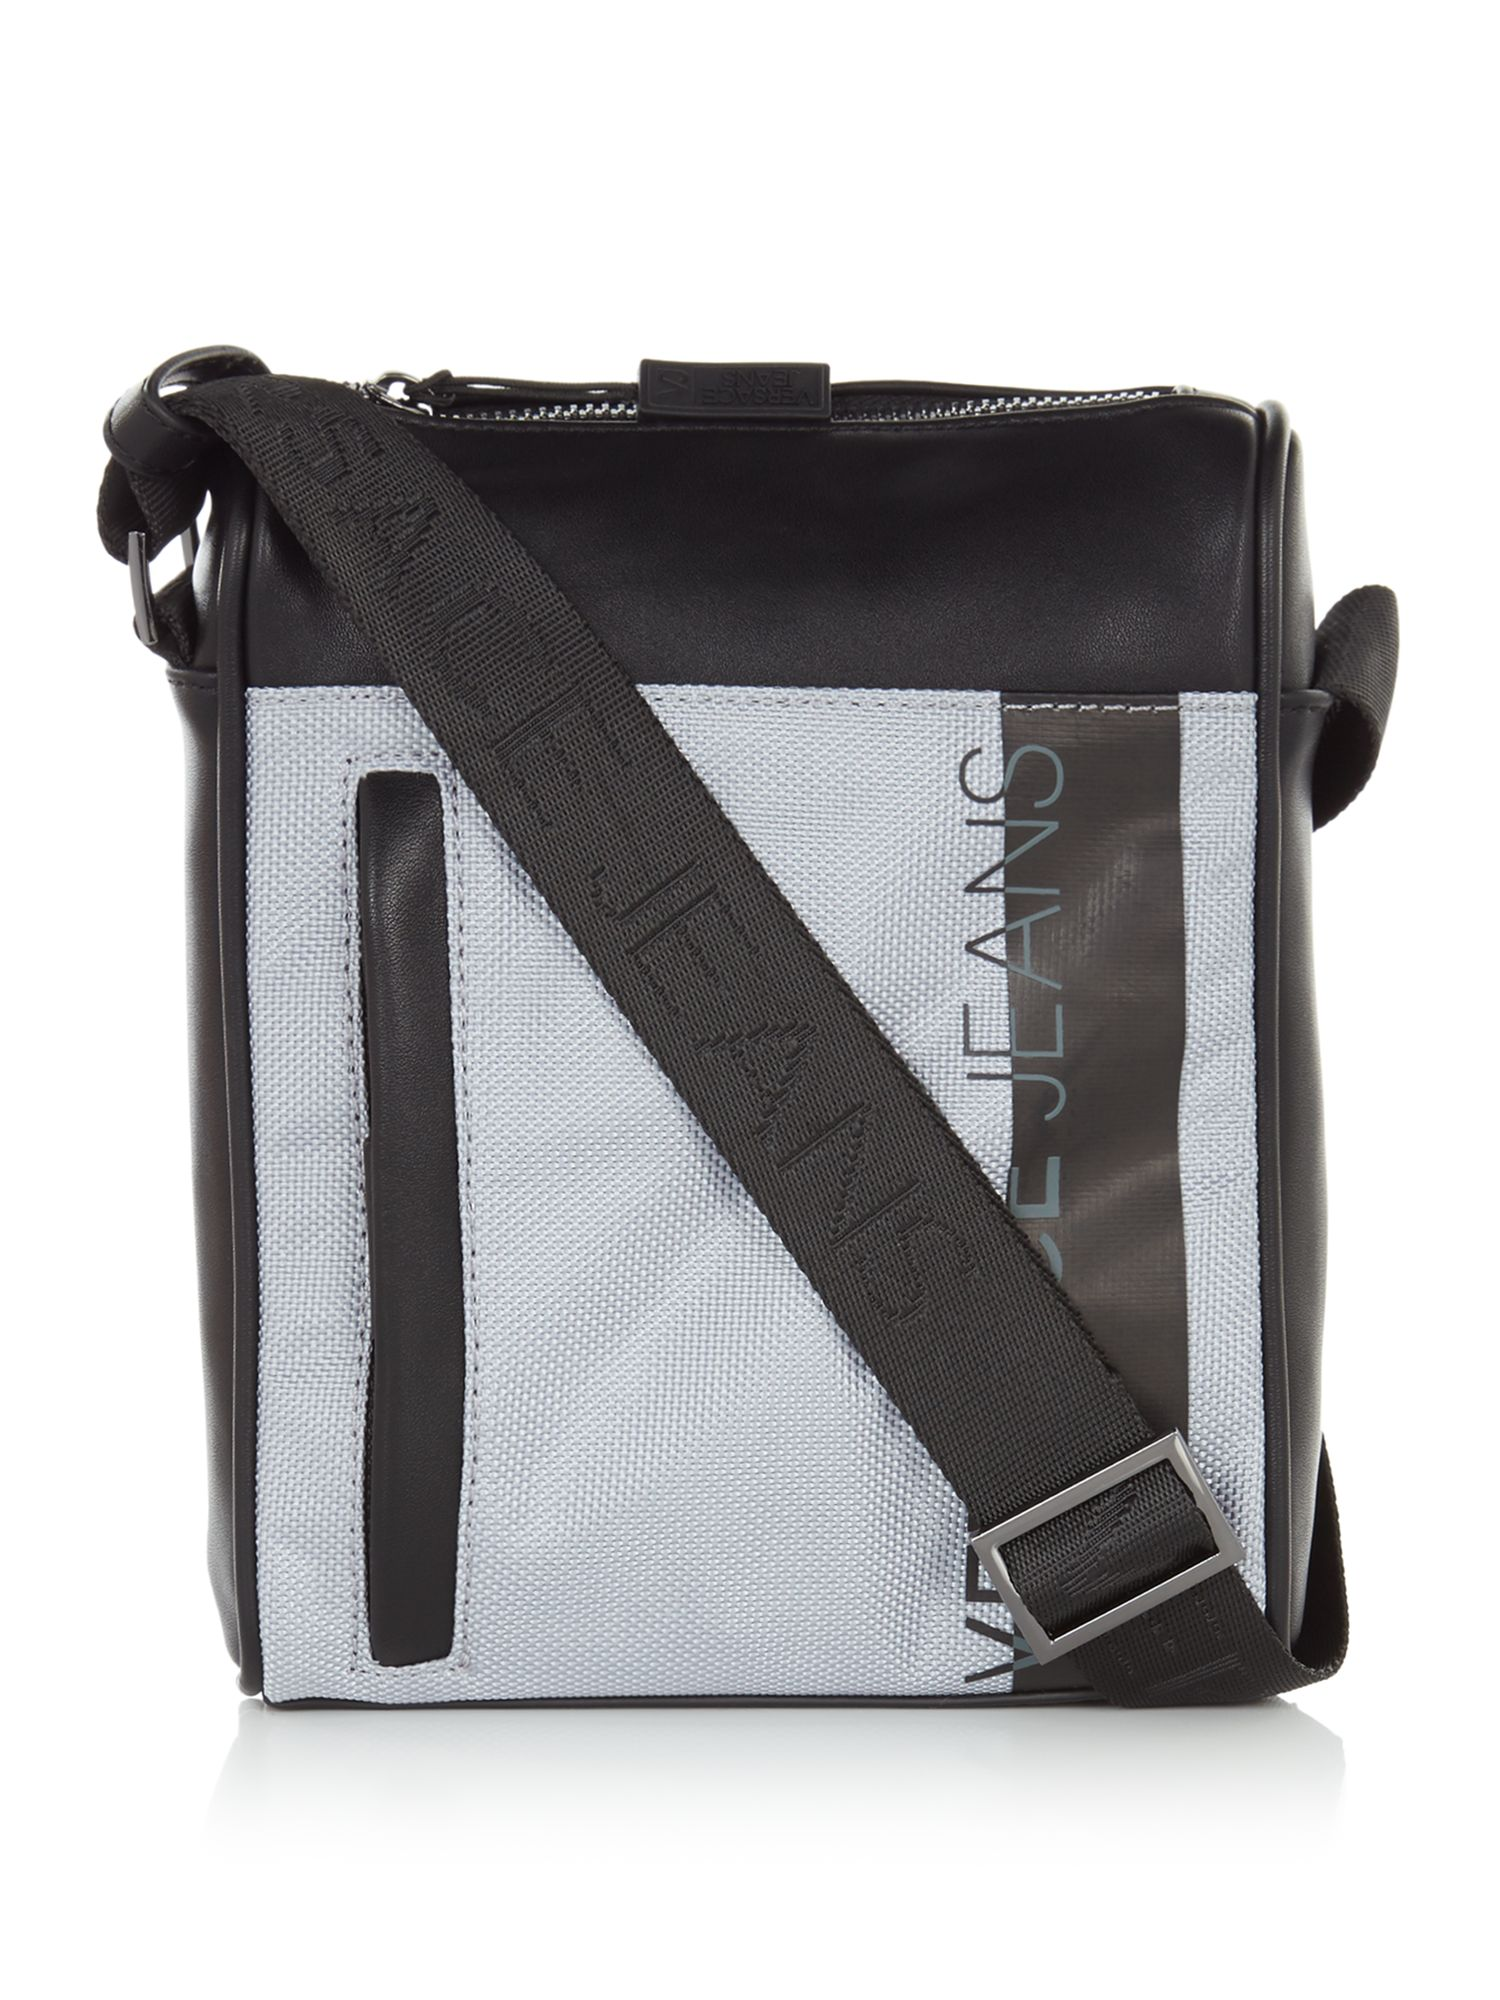 Versace Versace Jeans Cross Body Bag, Grey